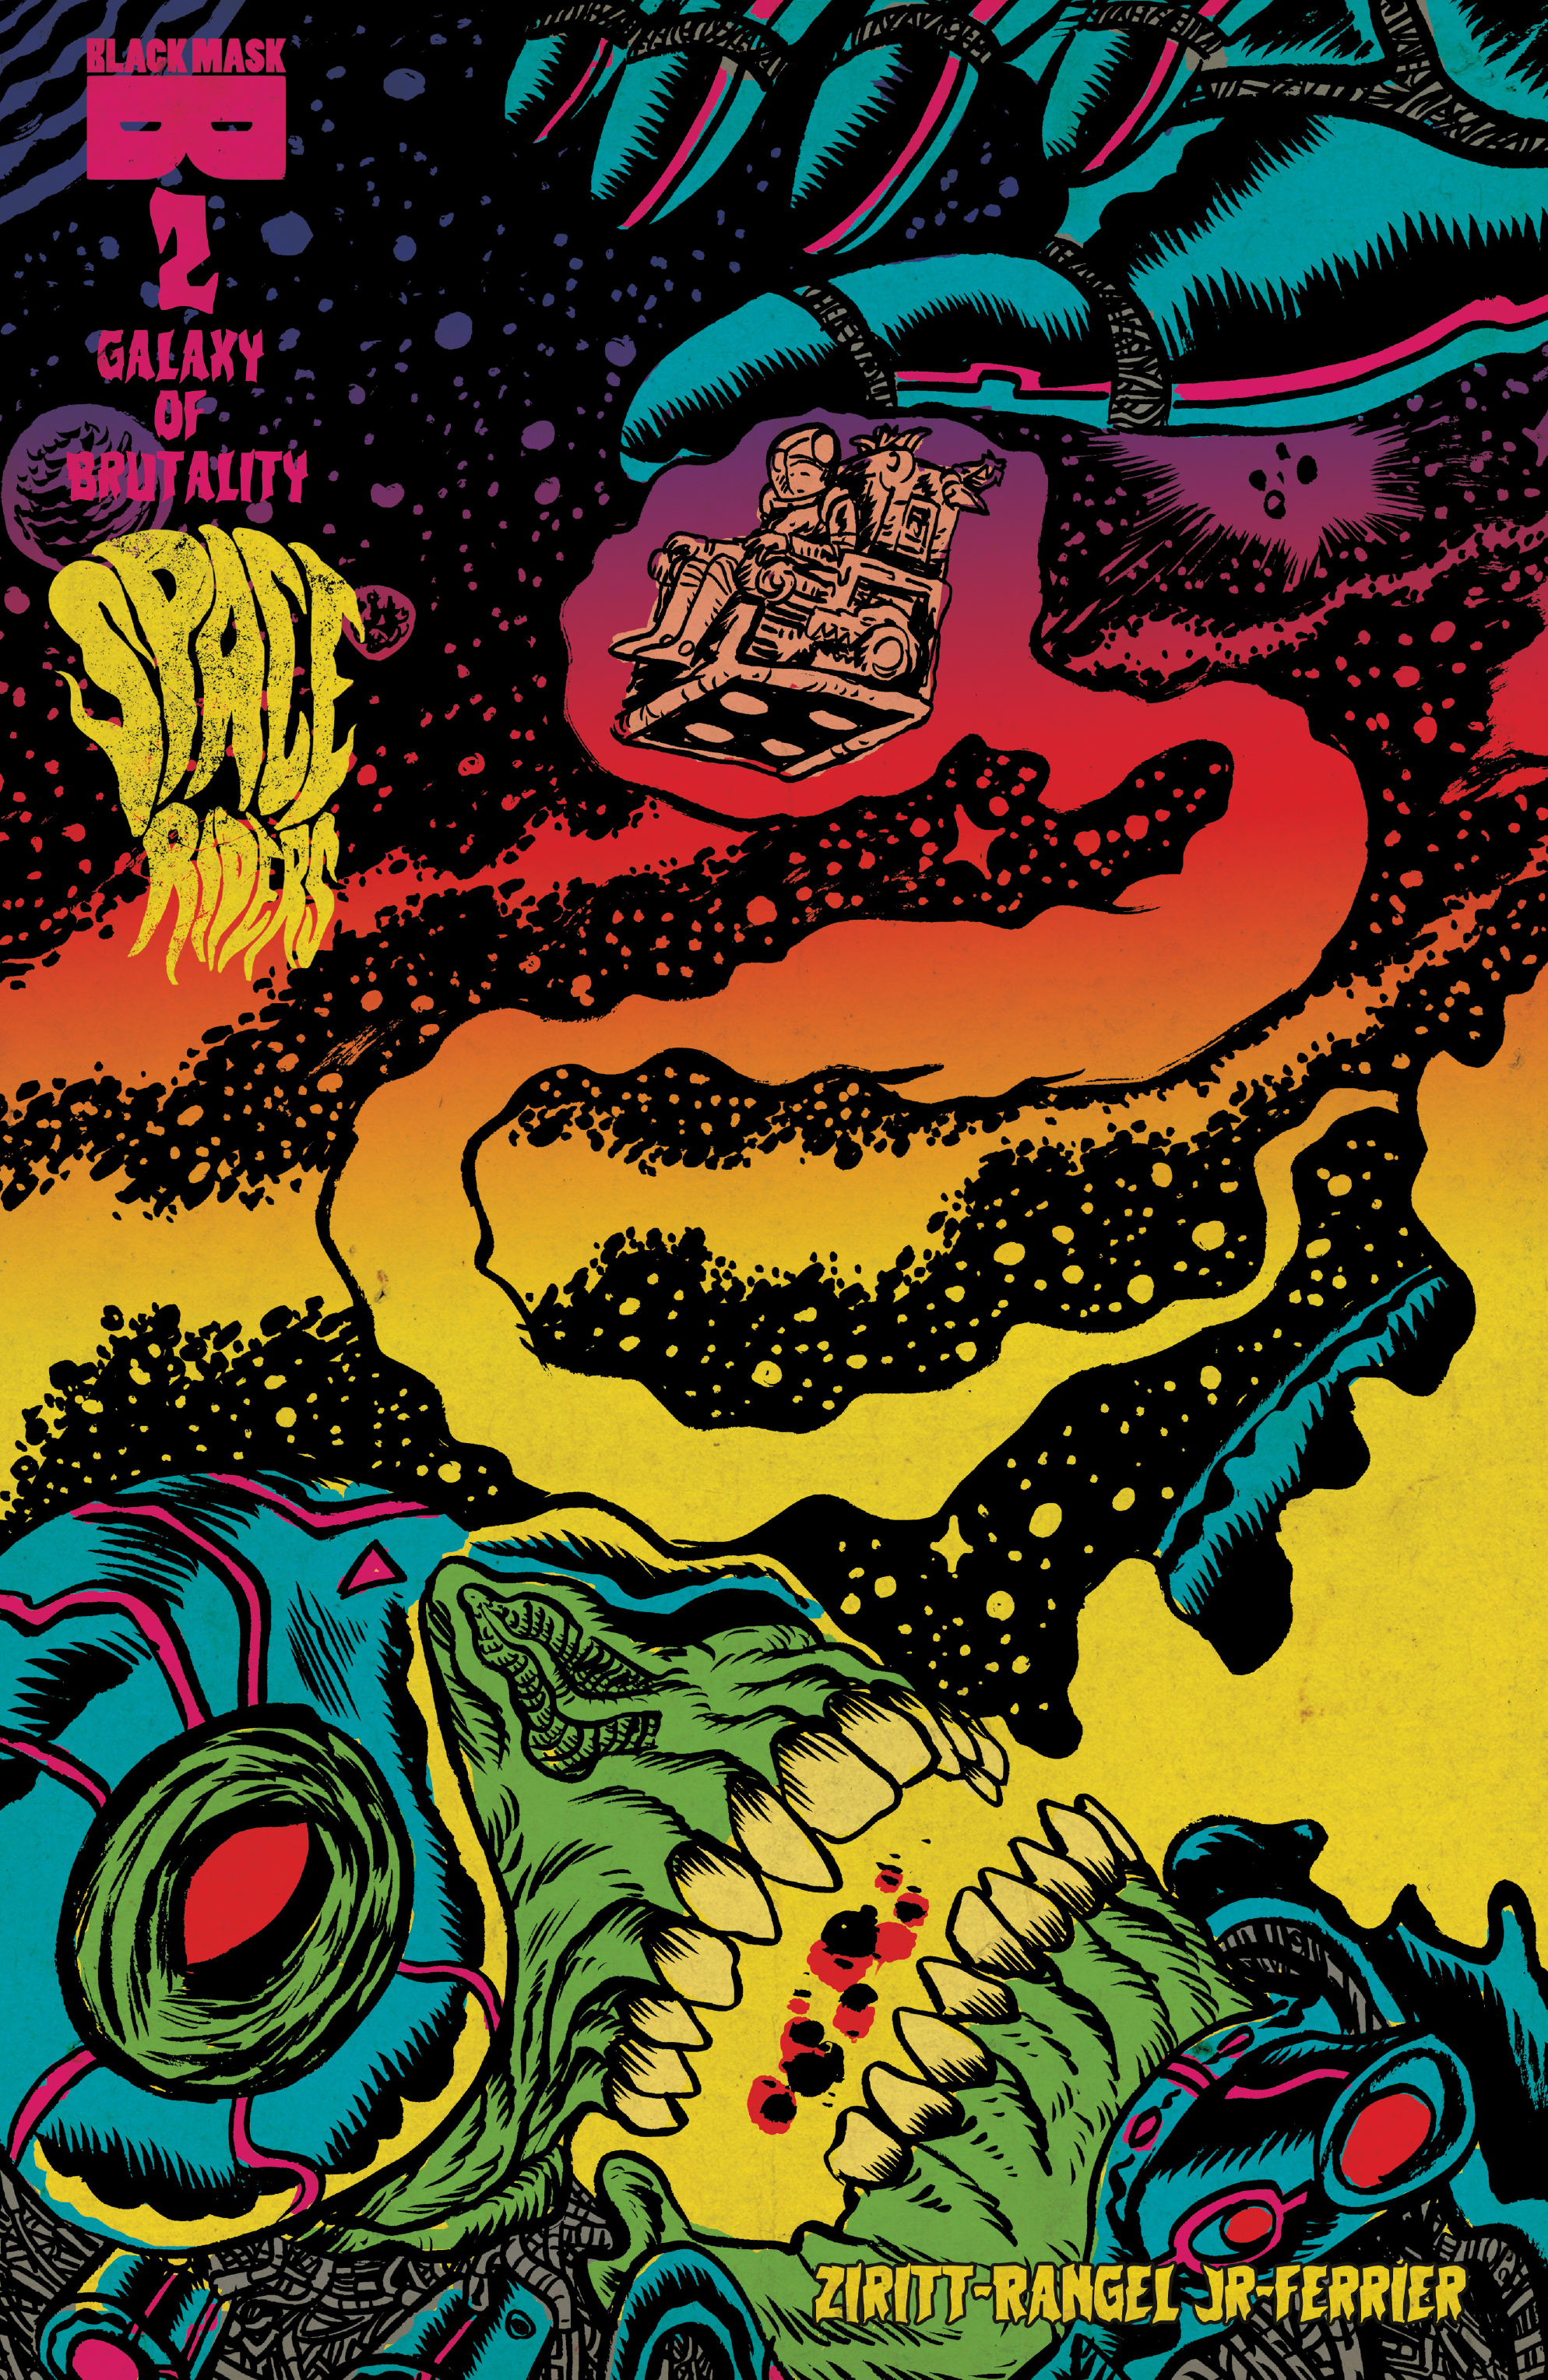 Read online Space Riders: Galaxy of Brutality comic -  Issue #2 - 1